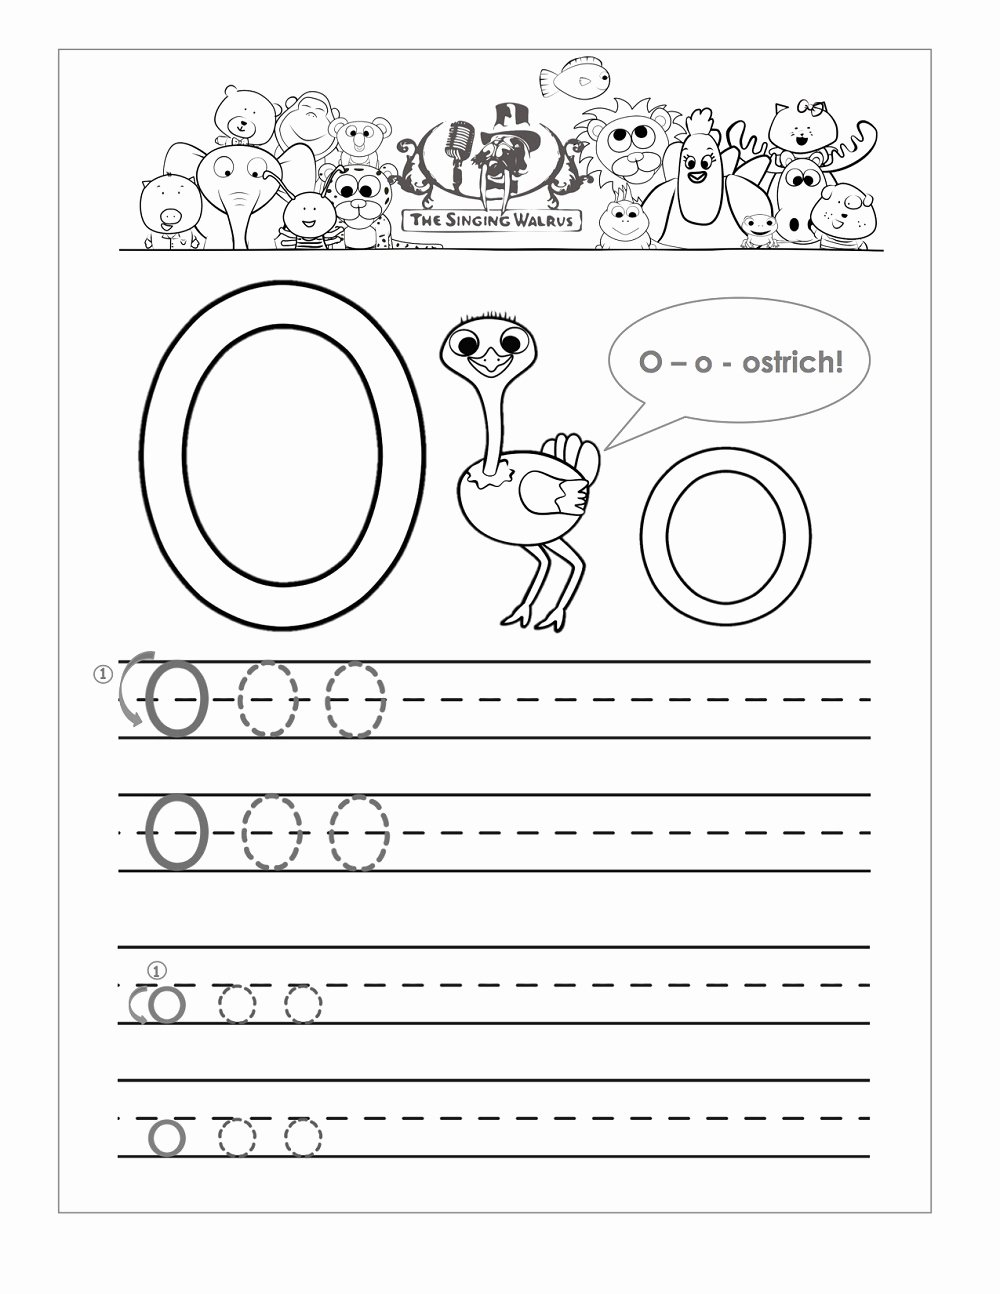 Letter O Worksheets for Preschoolers Awesome Worksheet the Letter Oorksheets for Kindergarten Object